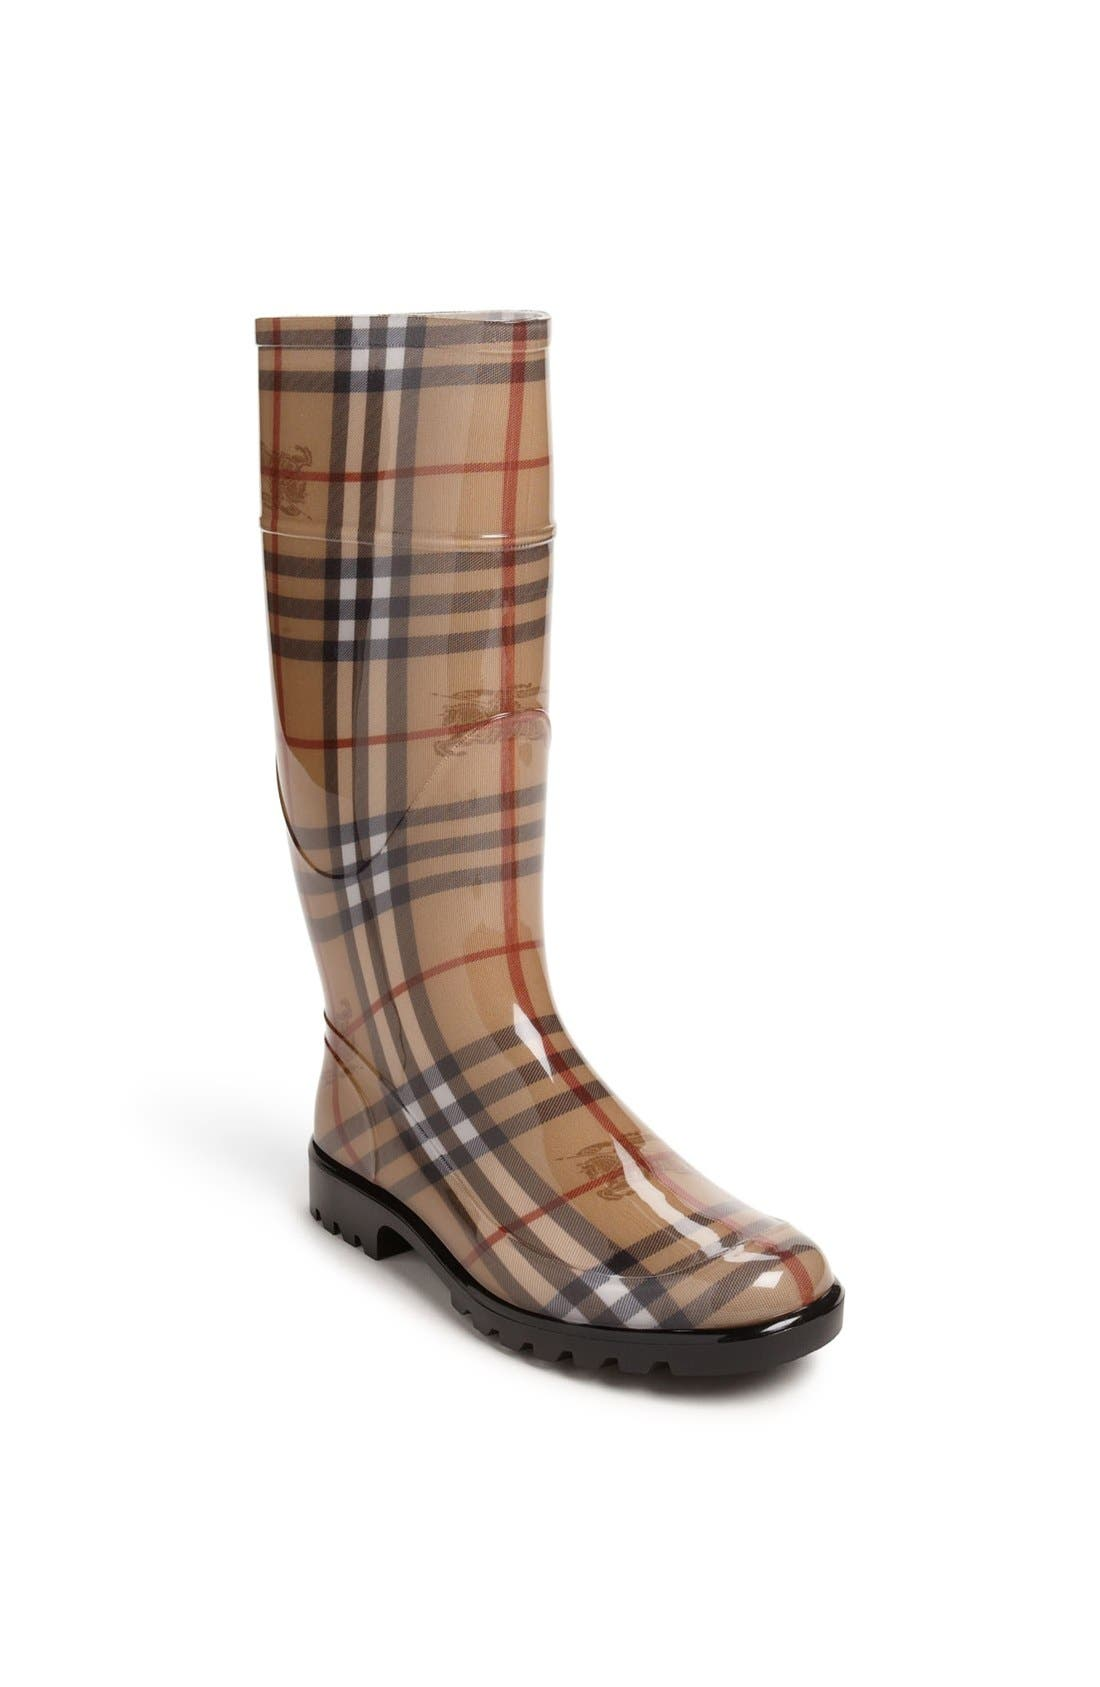 Main Image - Burberry Tall Rain Boot (Women)